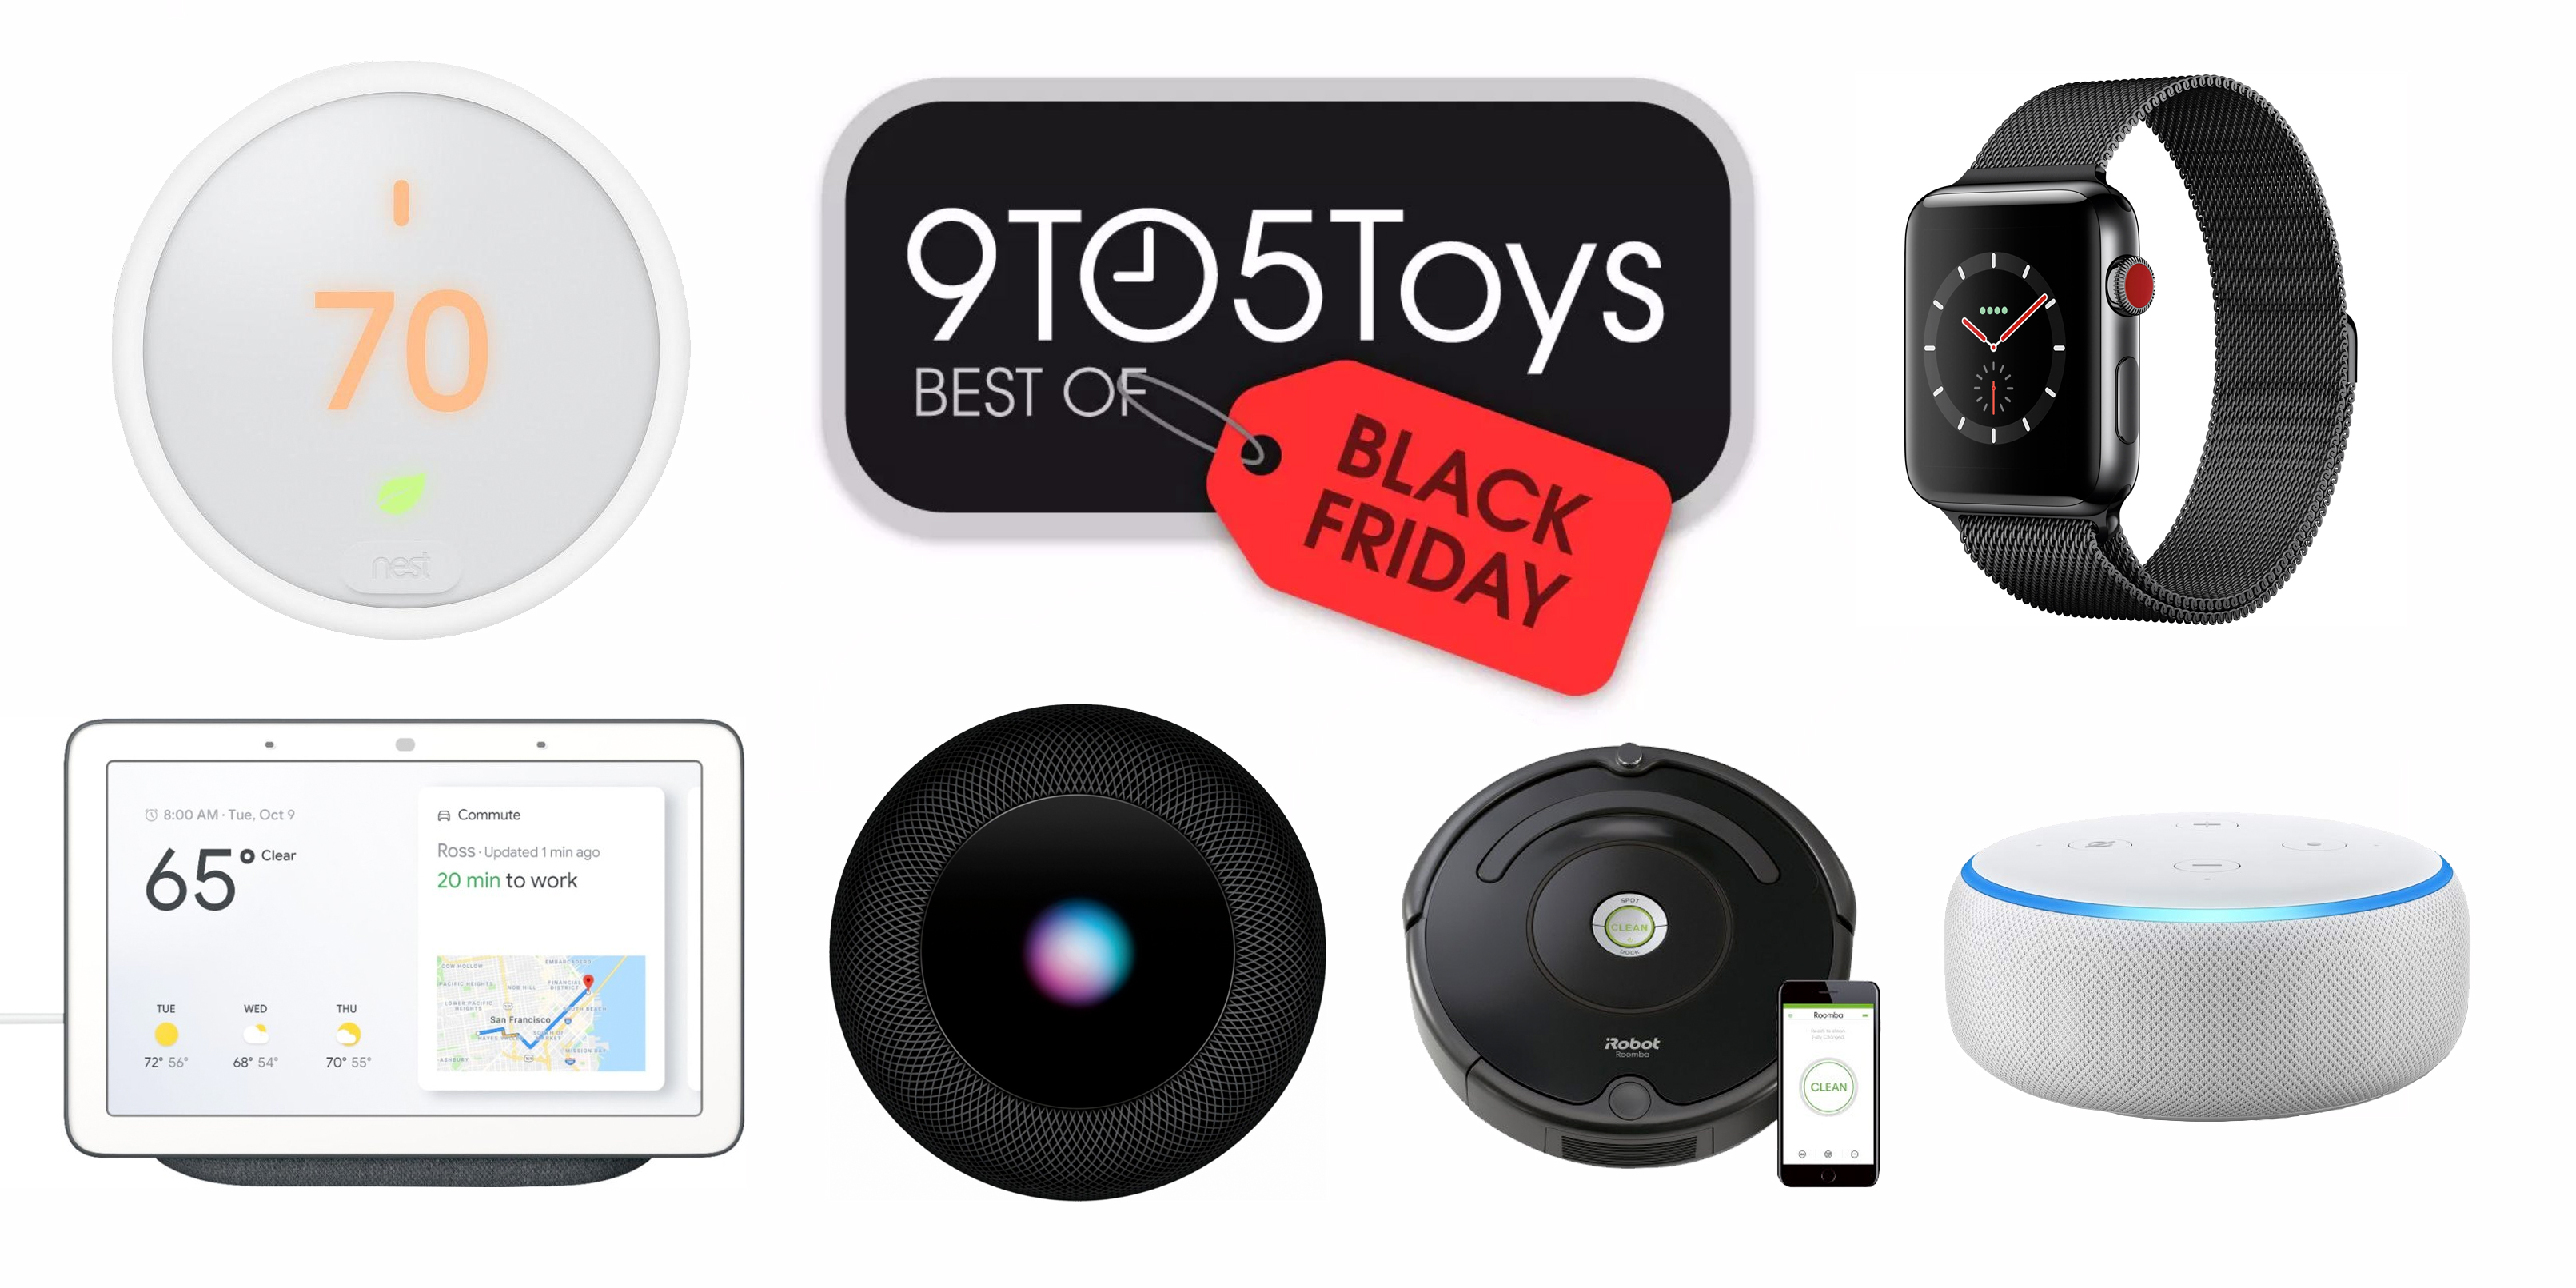 Black Friday Top Deals The Best Black Friday Deals Tvs Apple Smart Home More 9to5toys